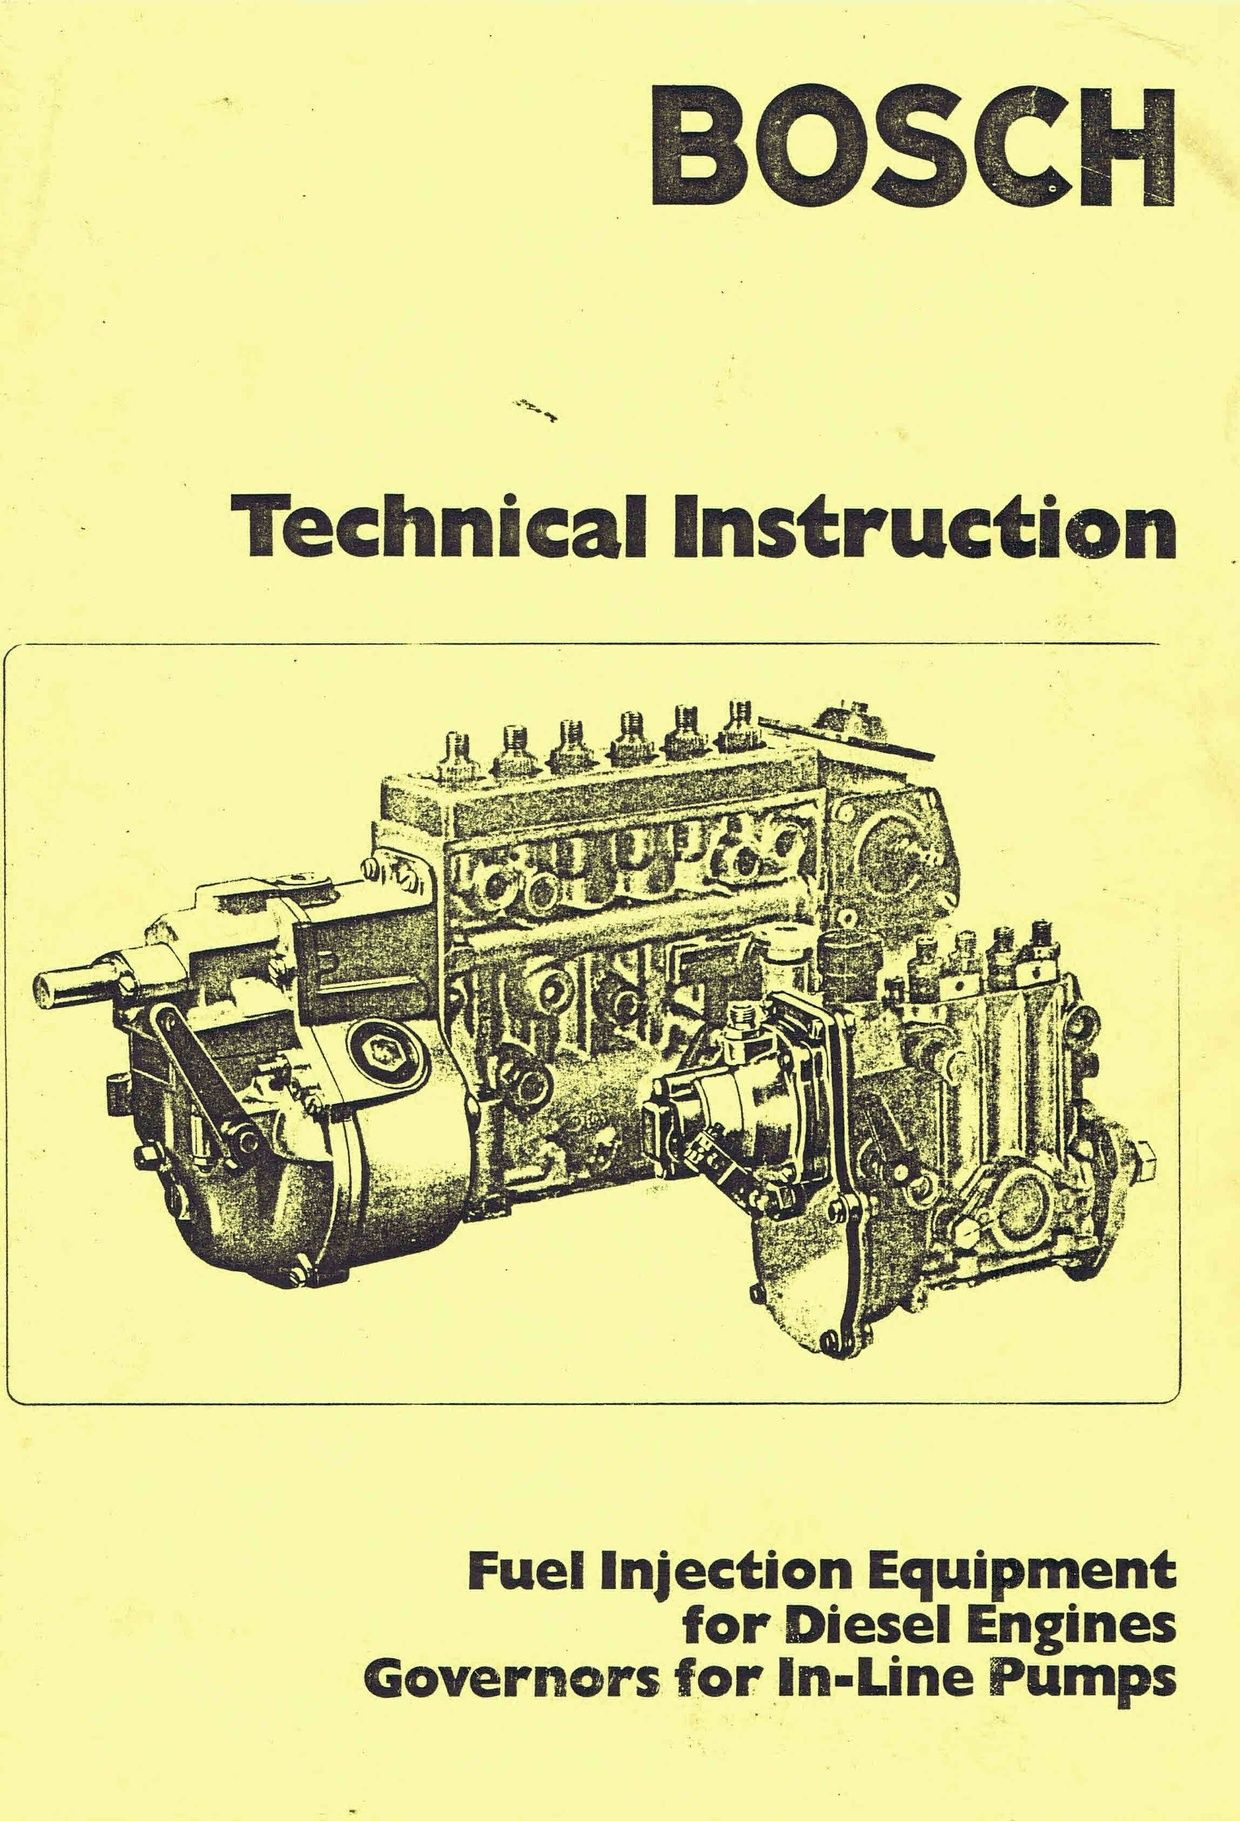 Bosch Diesel fuel Pump Manuals for Mechanics | Manuals | Diesel fuel